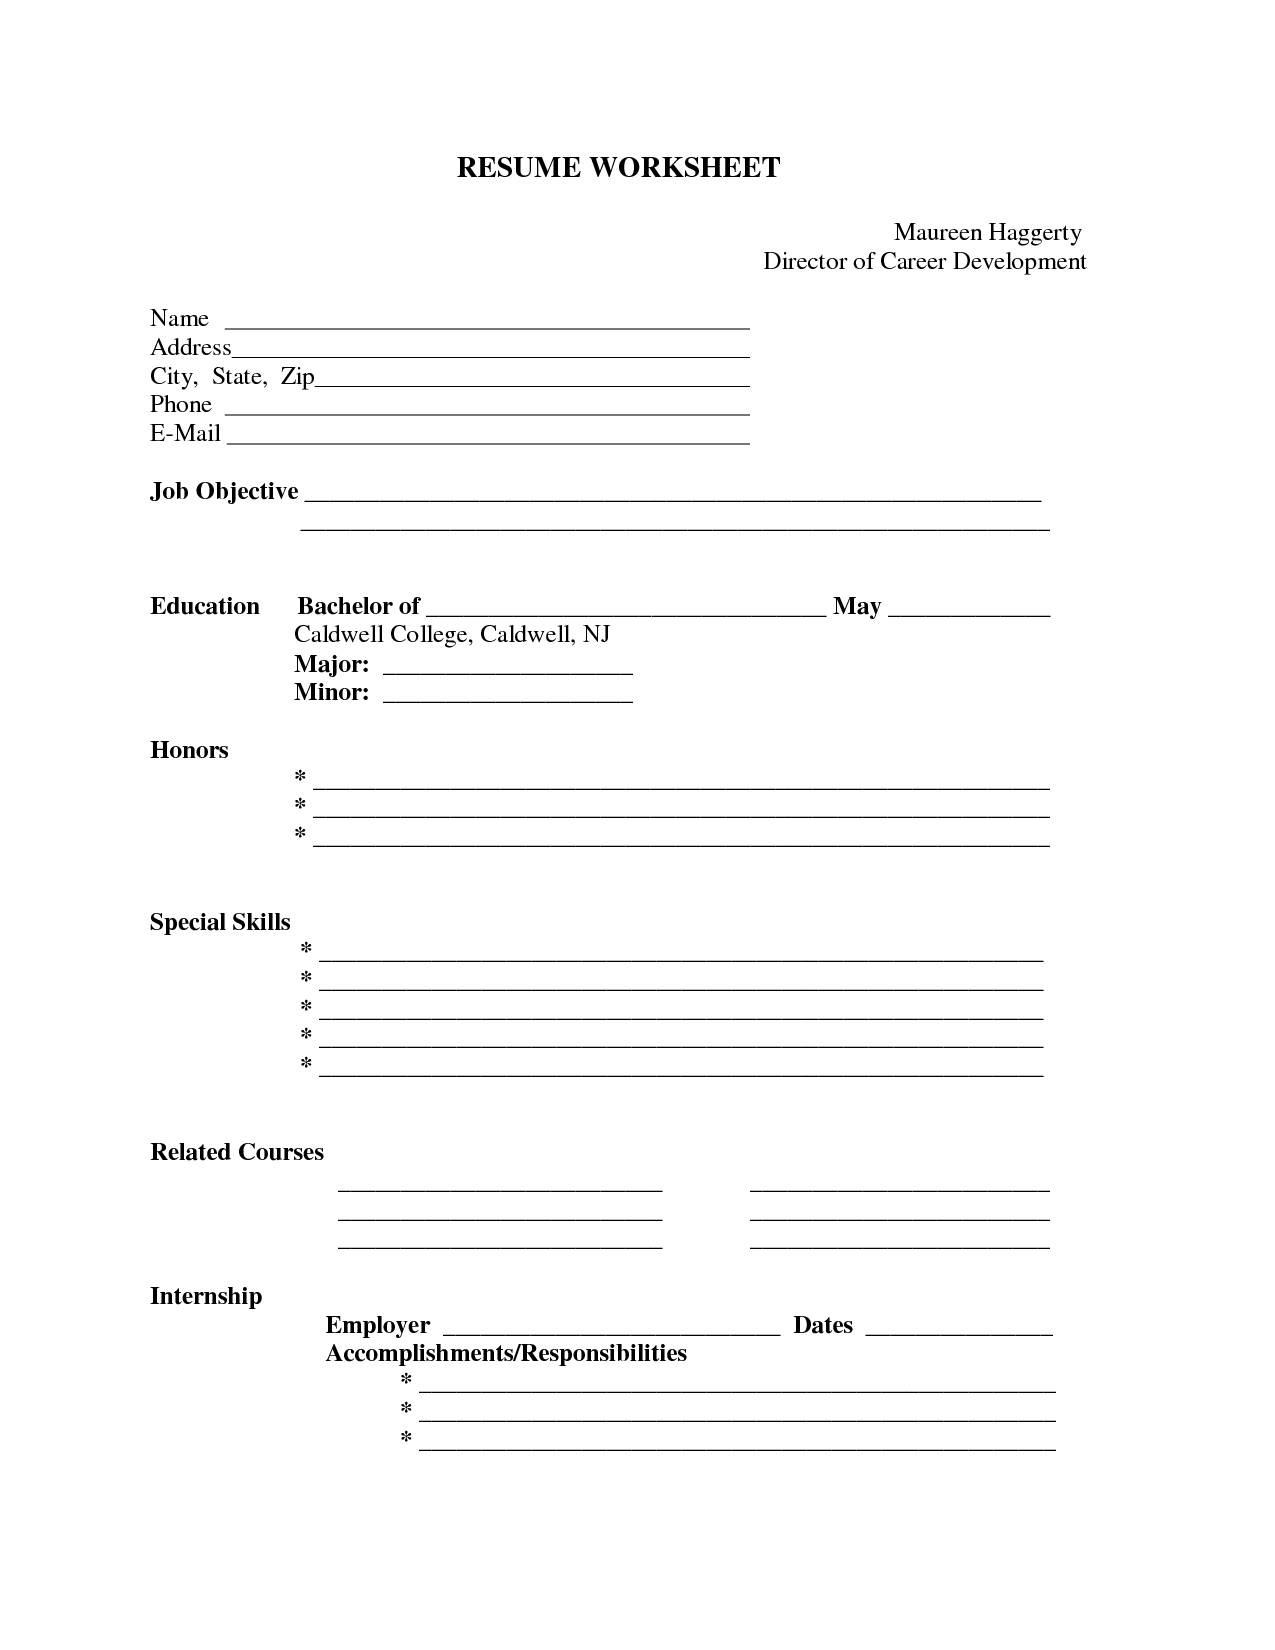 Resume Template Example Free Printable Fill In Blank Form Fill In  Fill In The Blank Template